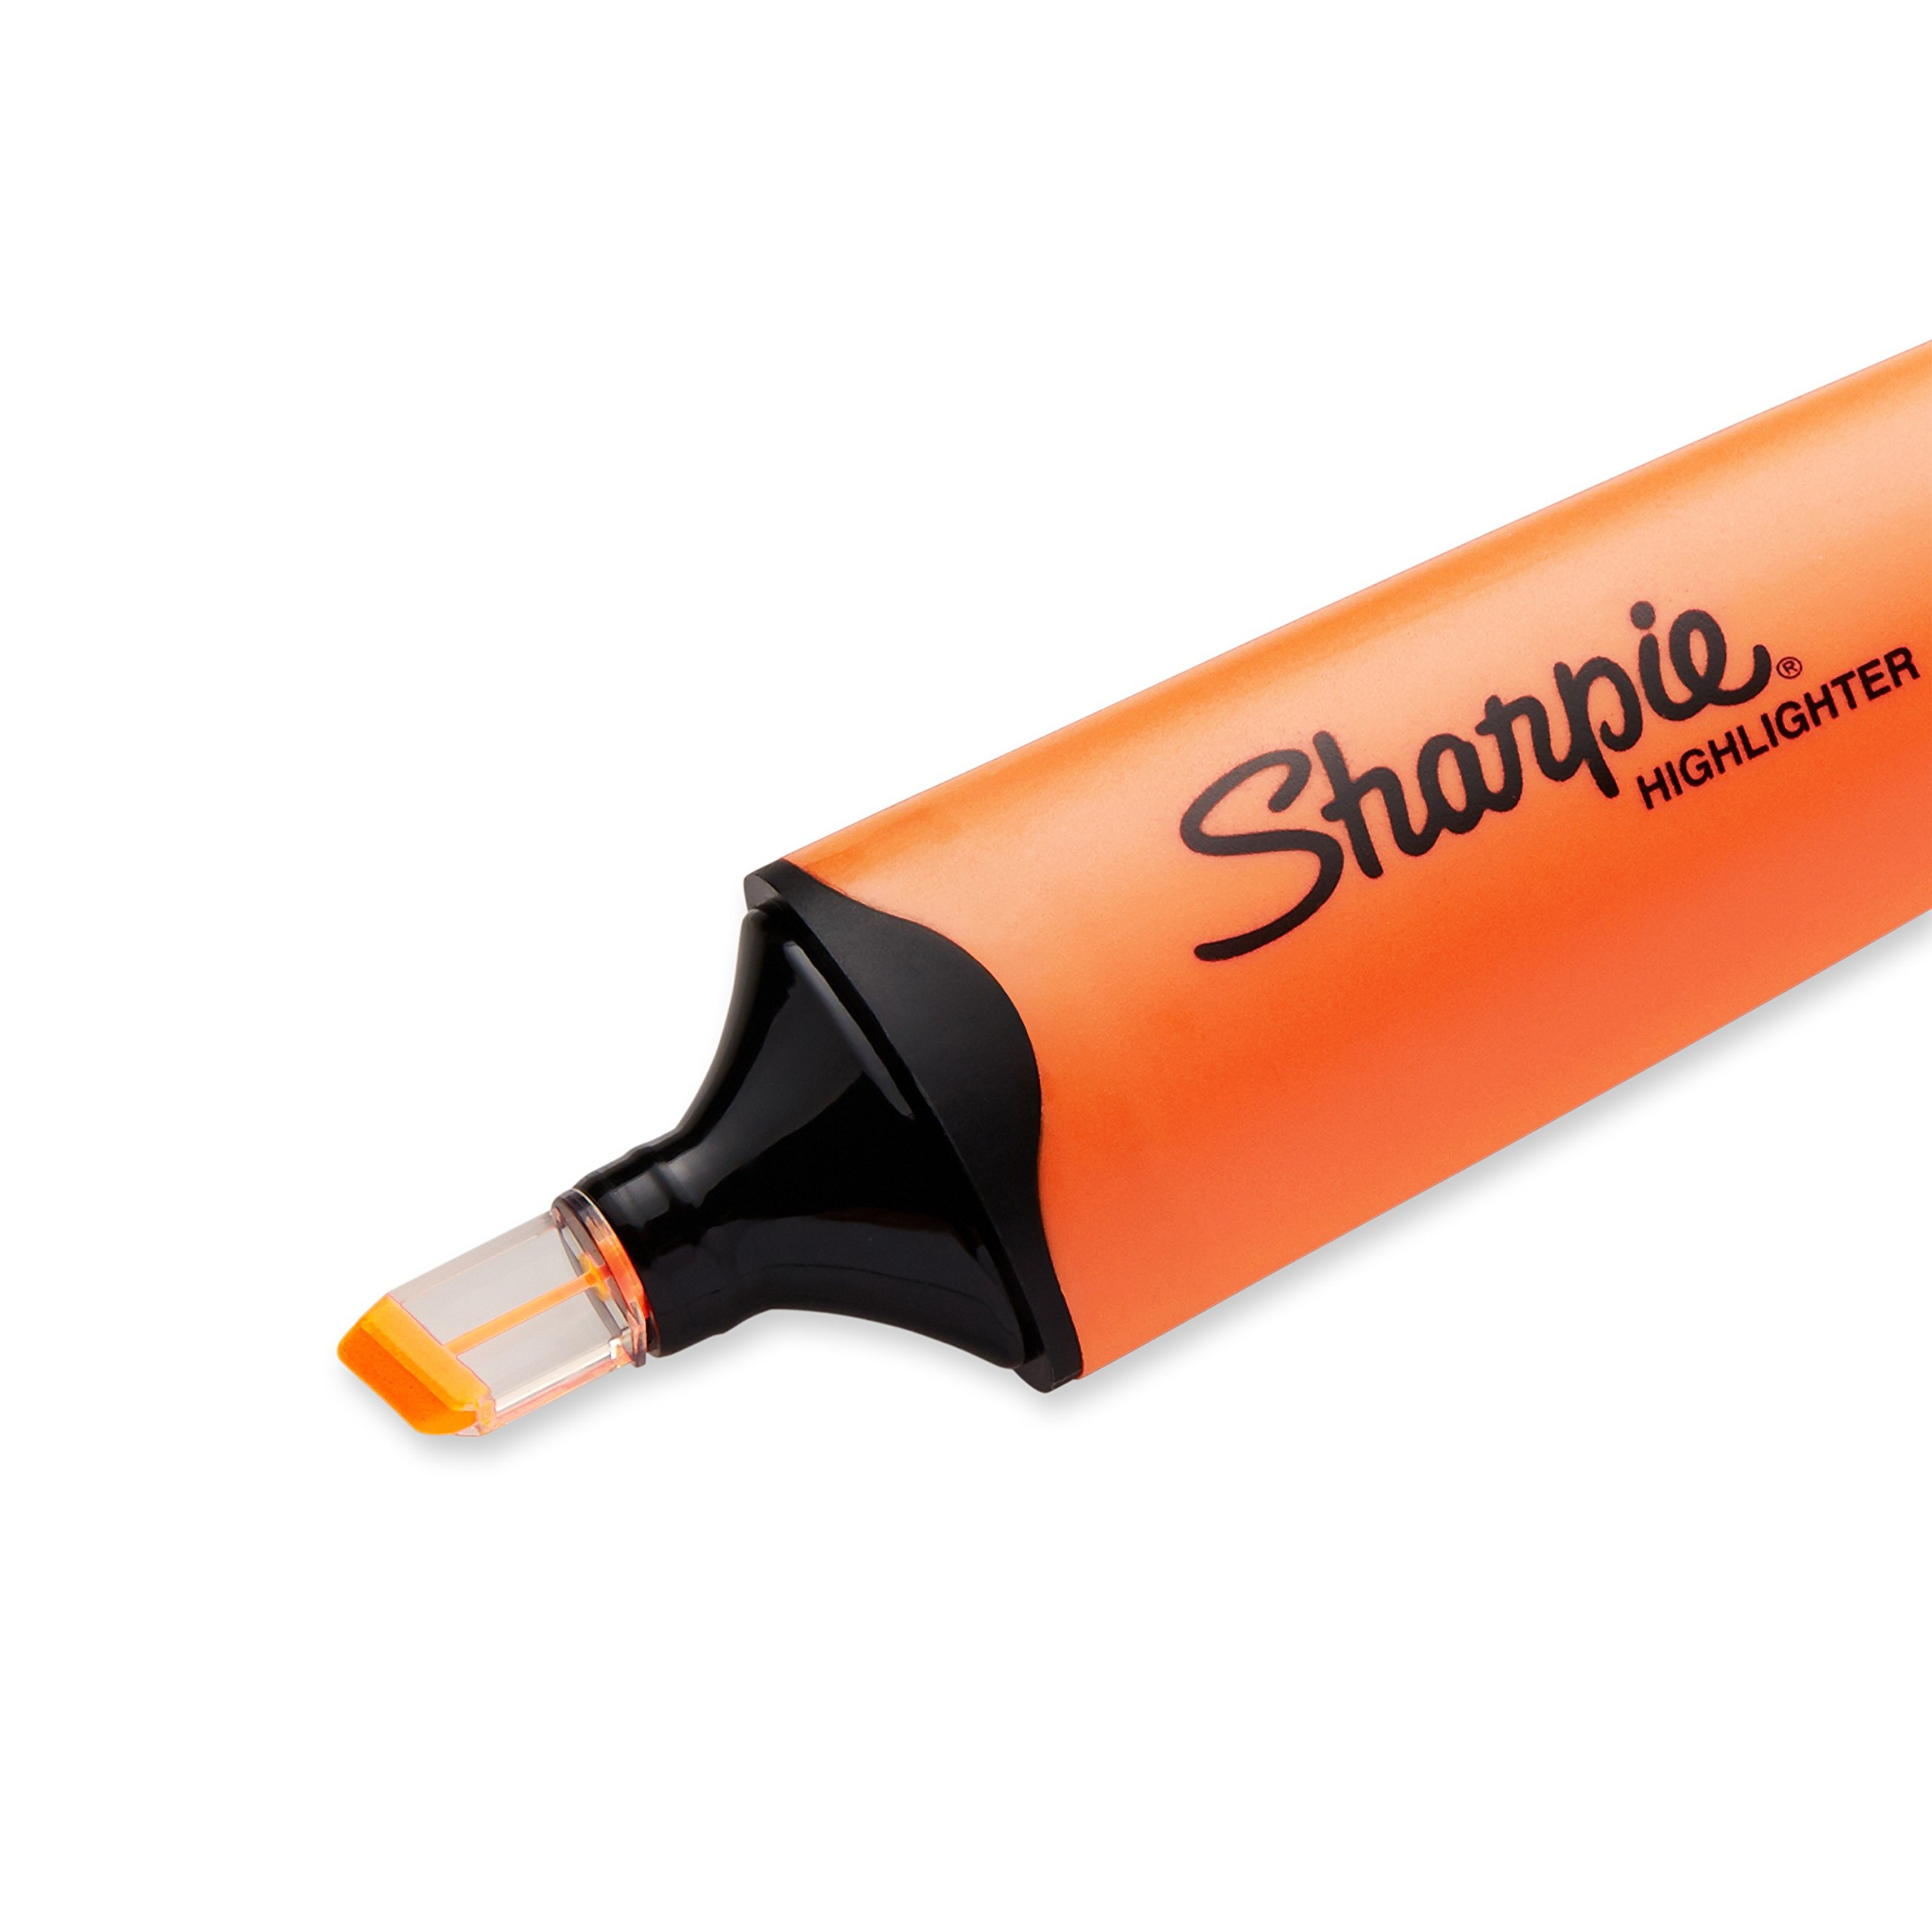 Sharpie Clear View Highlighter, Chisel Tip, 12-Pack, Orange (1897849) by Sharpie (Image #3)